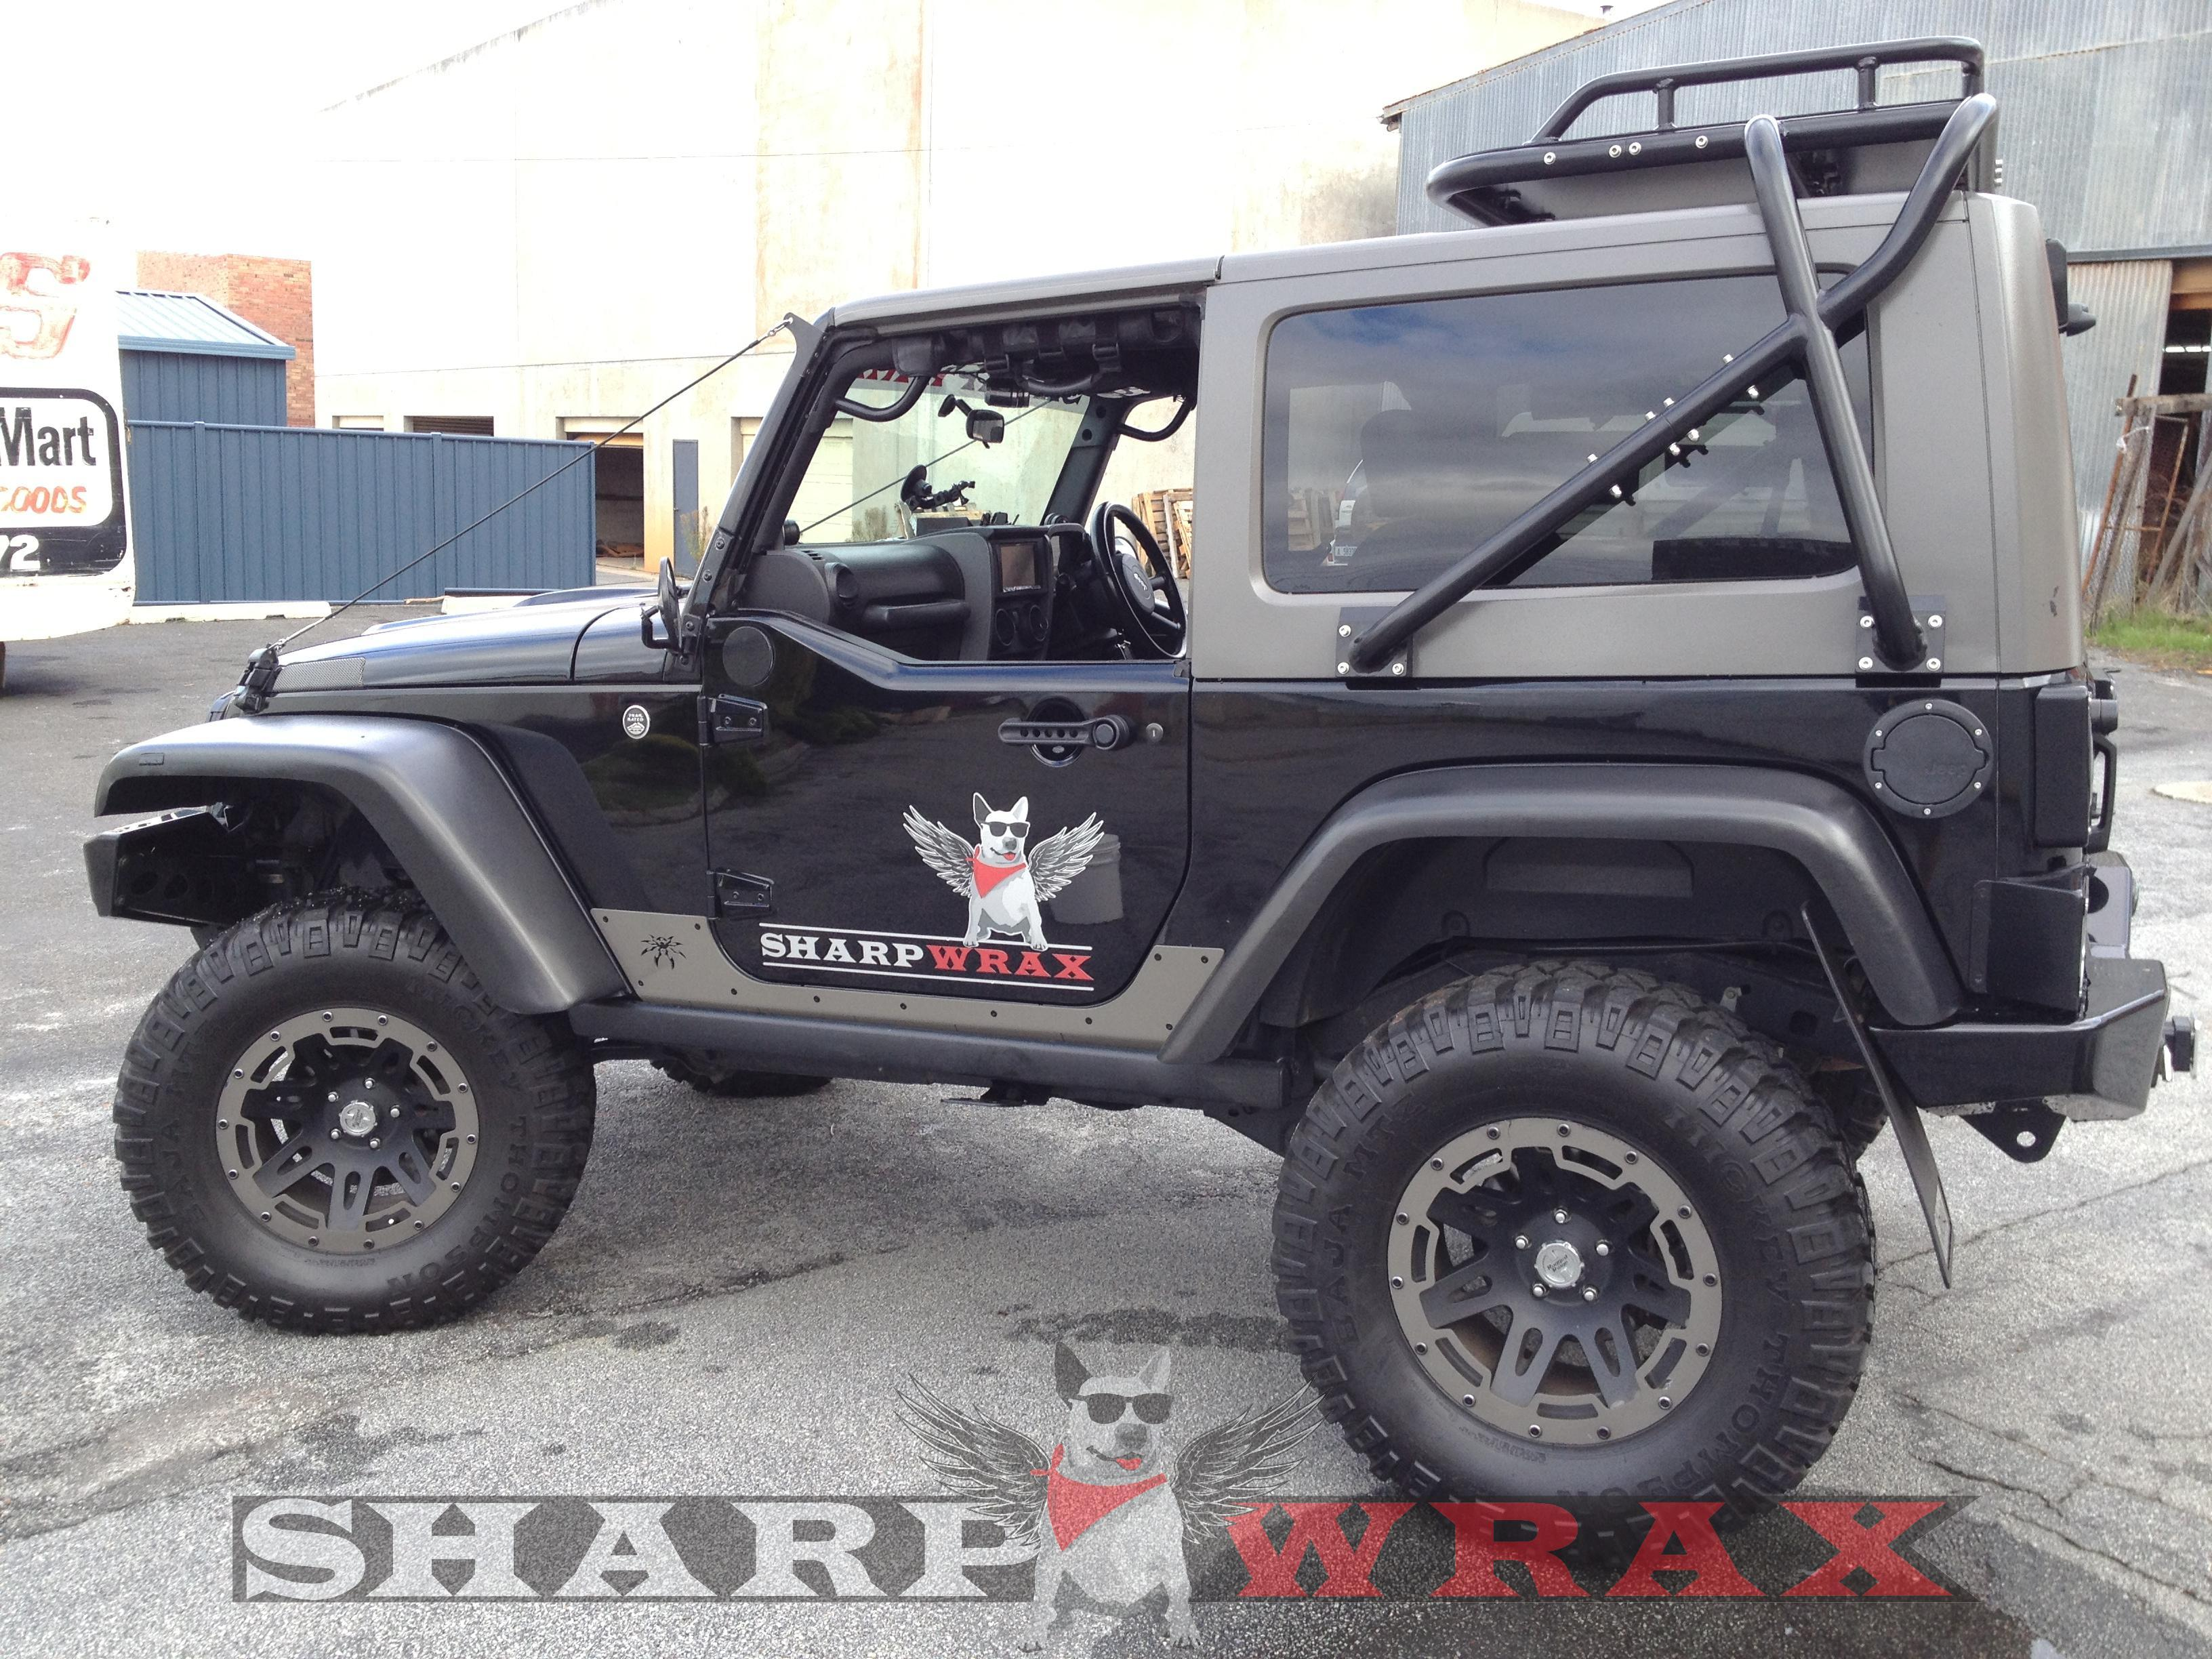 photo conduit of xj jeep rack for cherokeexj made x under out roof post r roofrack homemade